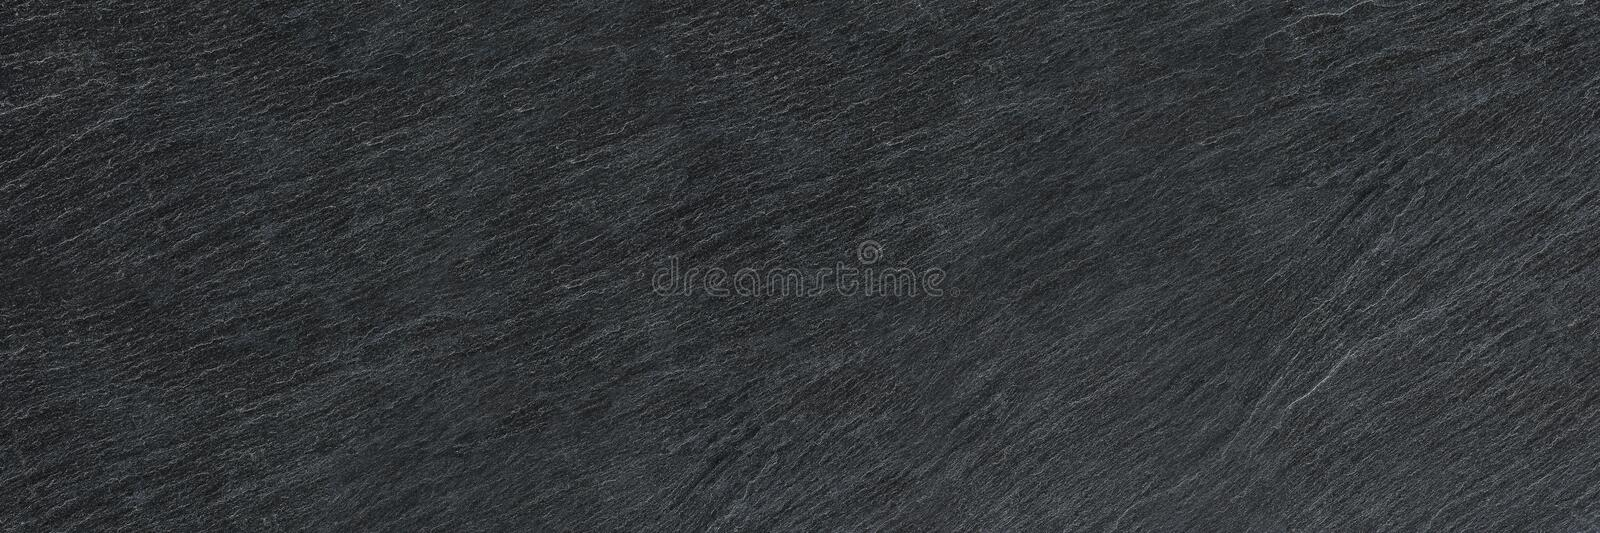 horizontal black stone texture for pattern and background royalty free stock photo